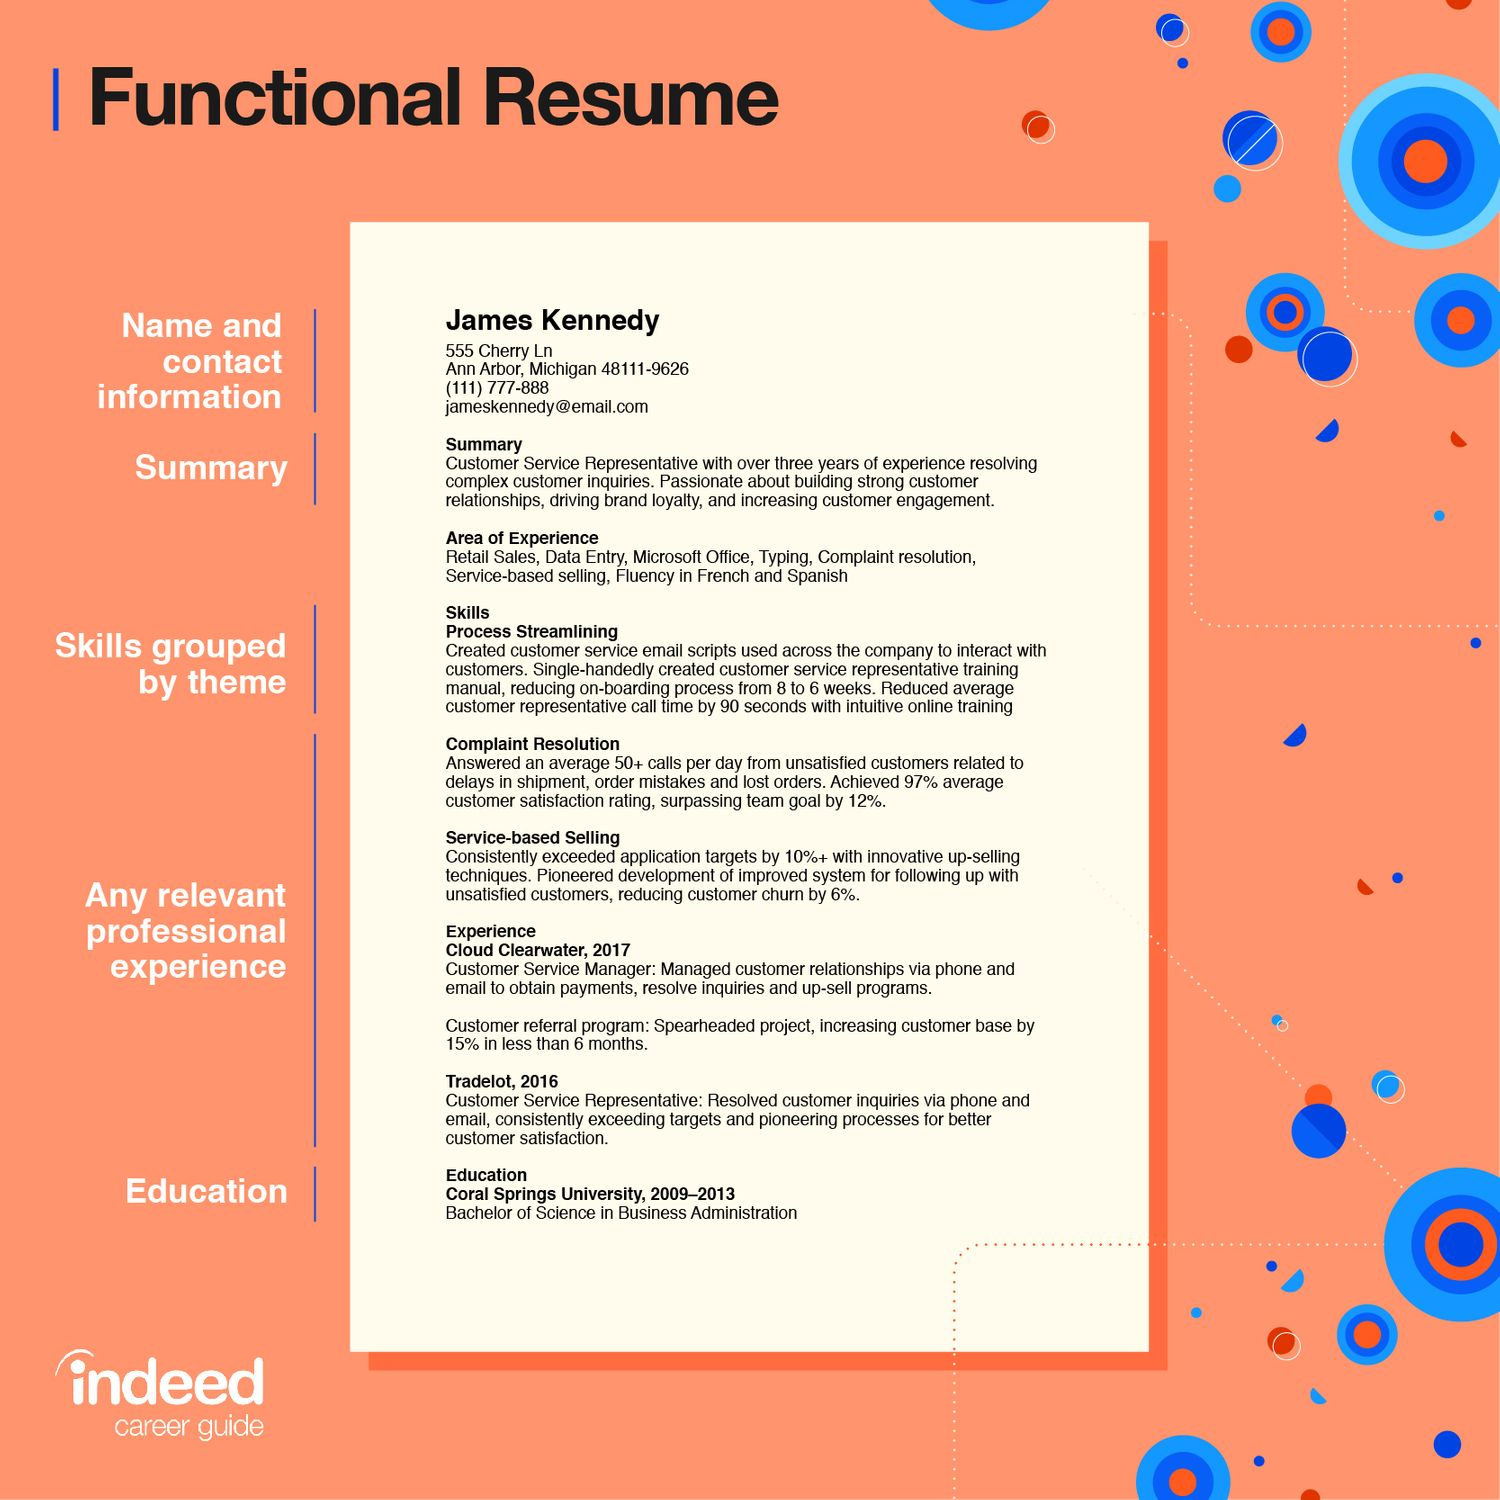 functional resume definition tips and examples indeed microsoft template resized cna Resume Microsoft Functional Resume Template